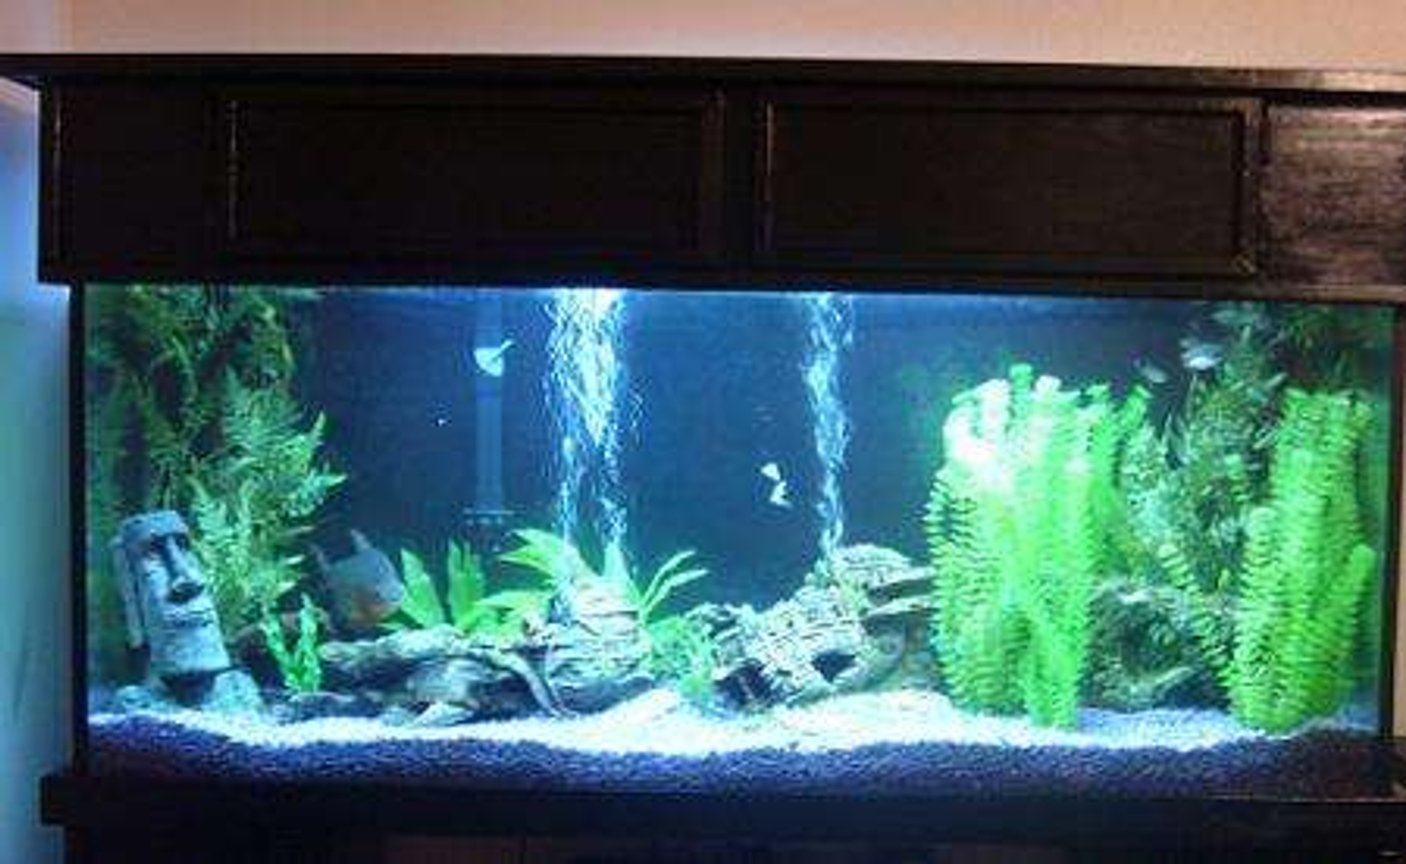 "125 gallons freshwater fish tank (mostly fish and non-living decorations) - 72"" x 18"" x 24"" ; Coralife lighting system, Canister Filter plus 1 Emperor 400; 2 PowerHeads attached to undergravel Filtration System; 2 x 150W Heaters Pacu, Bala Sharks, a very large Pleco, and some mollies for space fillers"